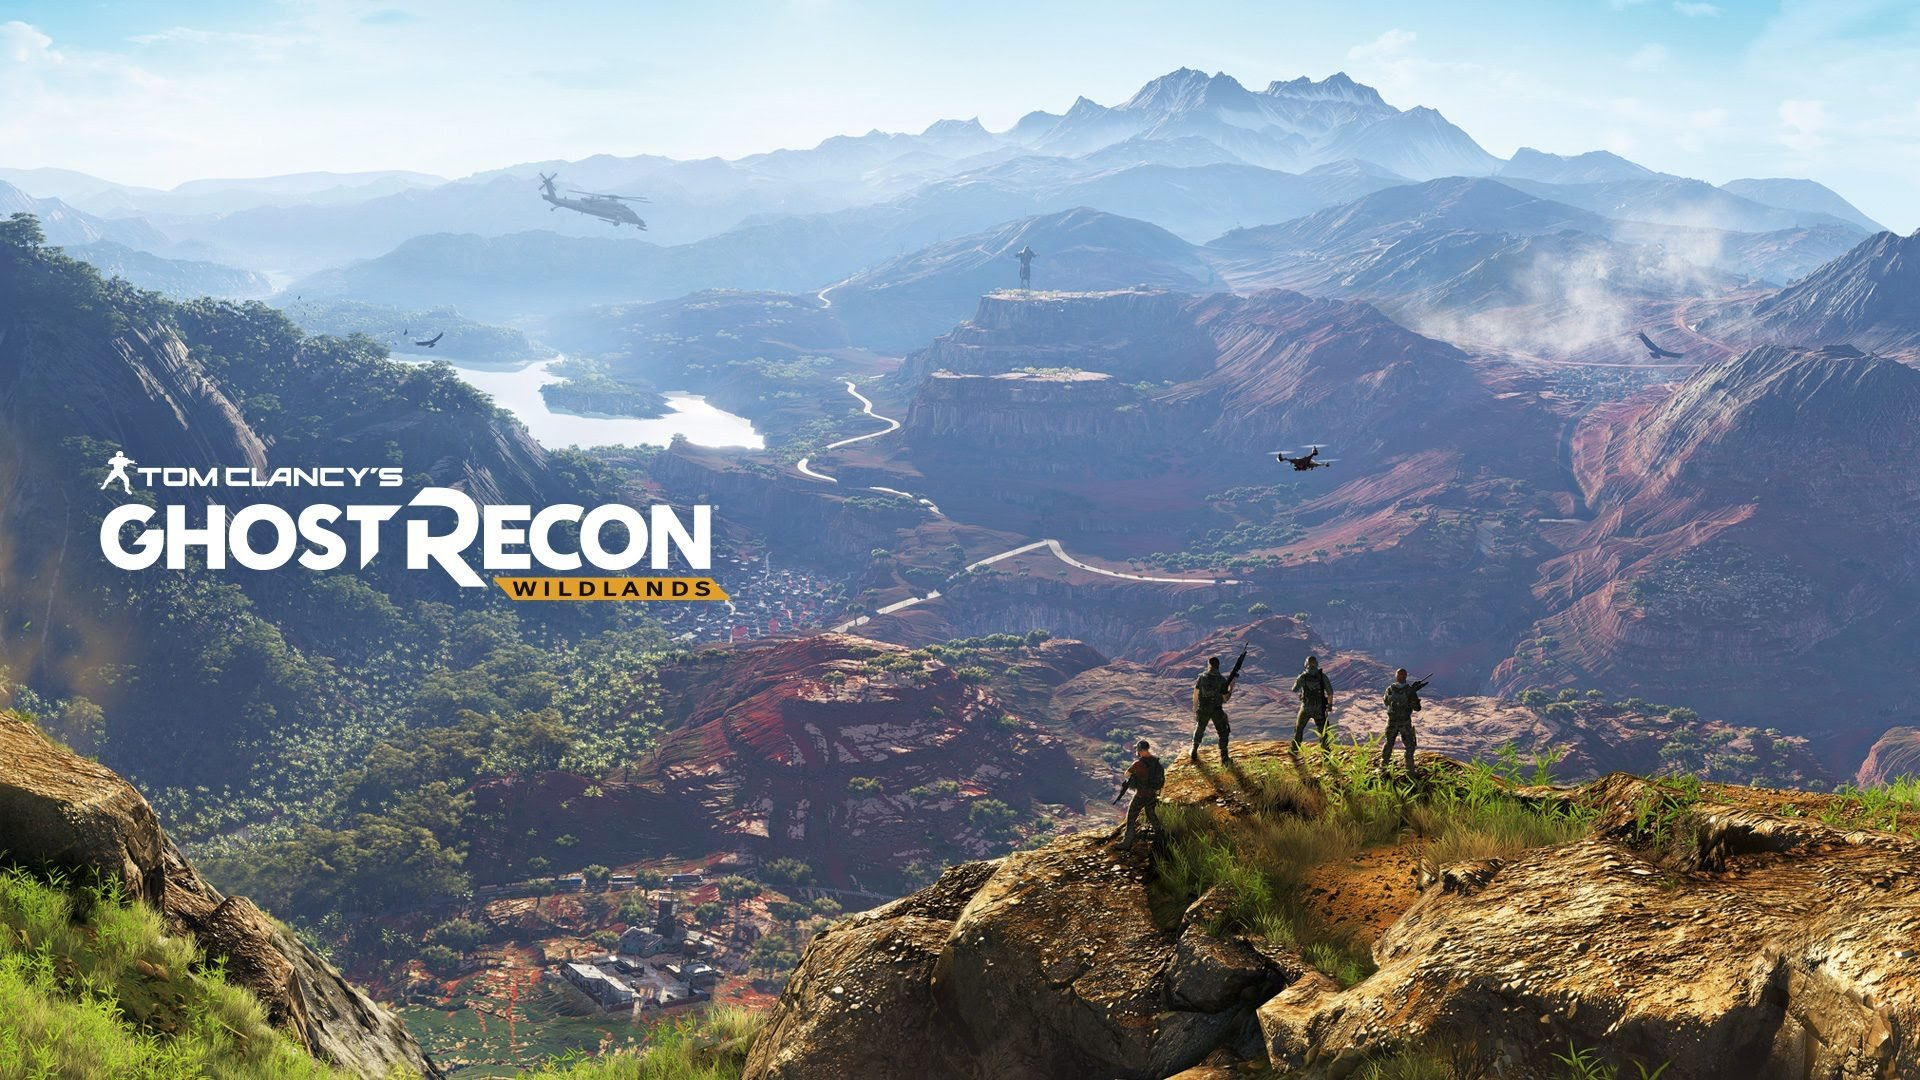 Ghost recon wildlands military shooter action fighting - Ghost recon wildlands mobile wallpaper ...